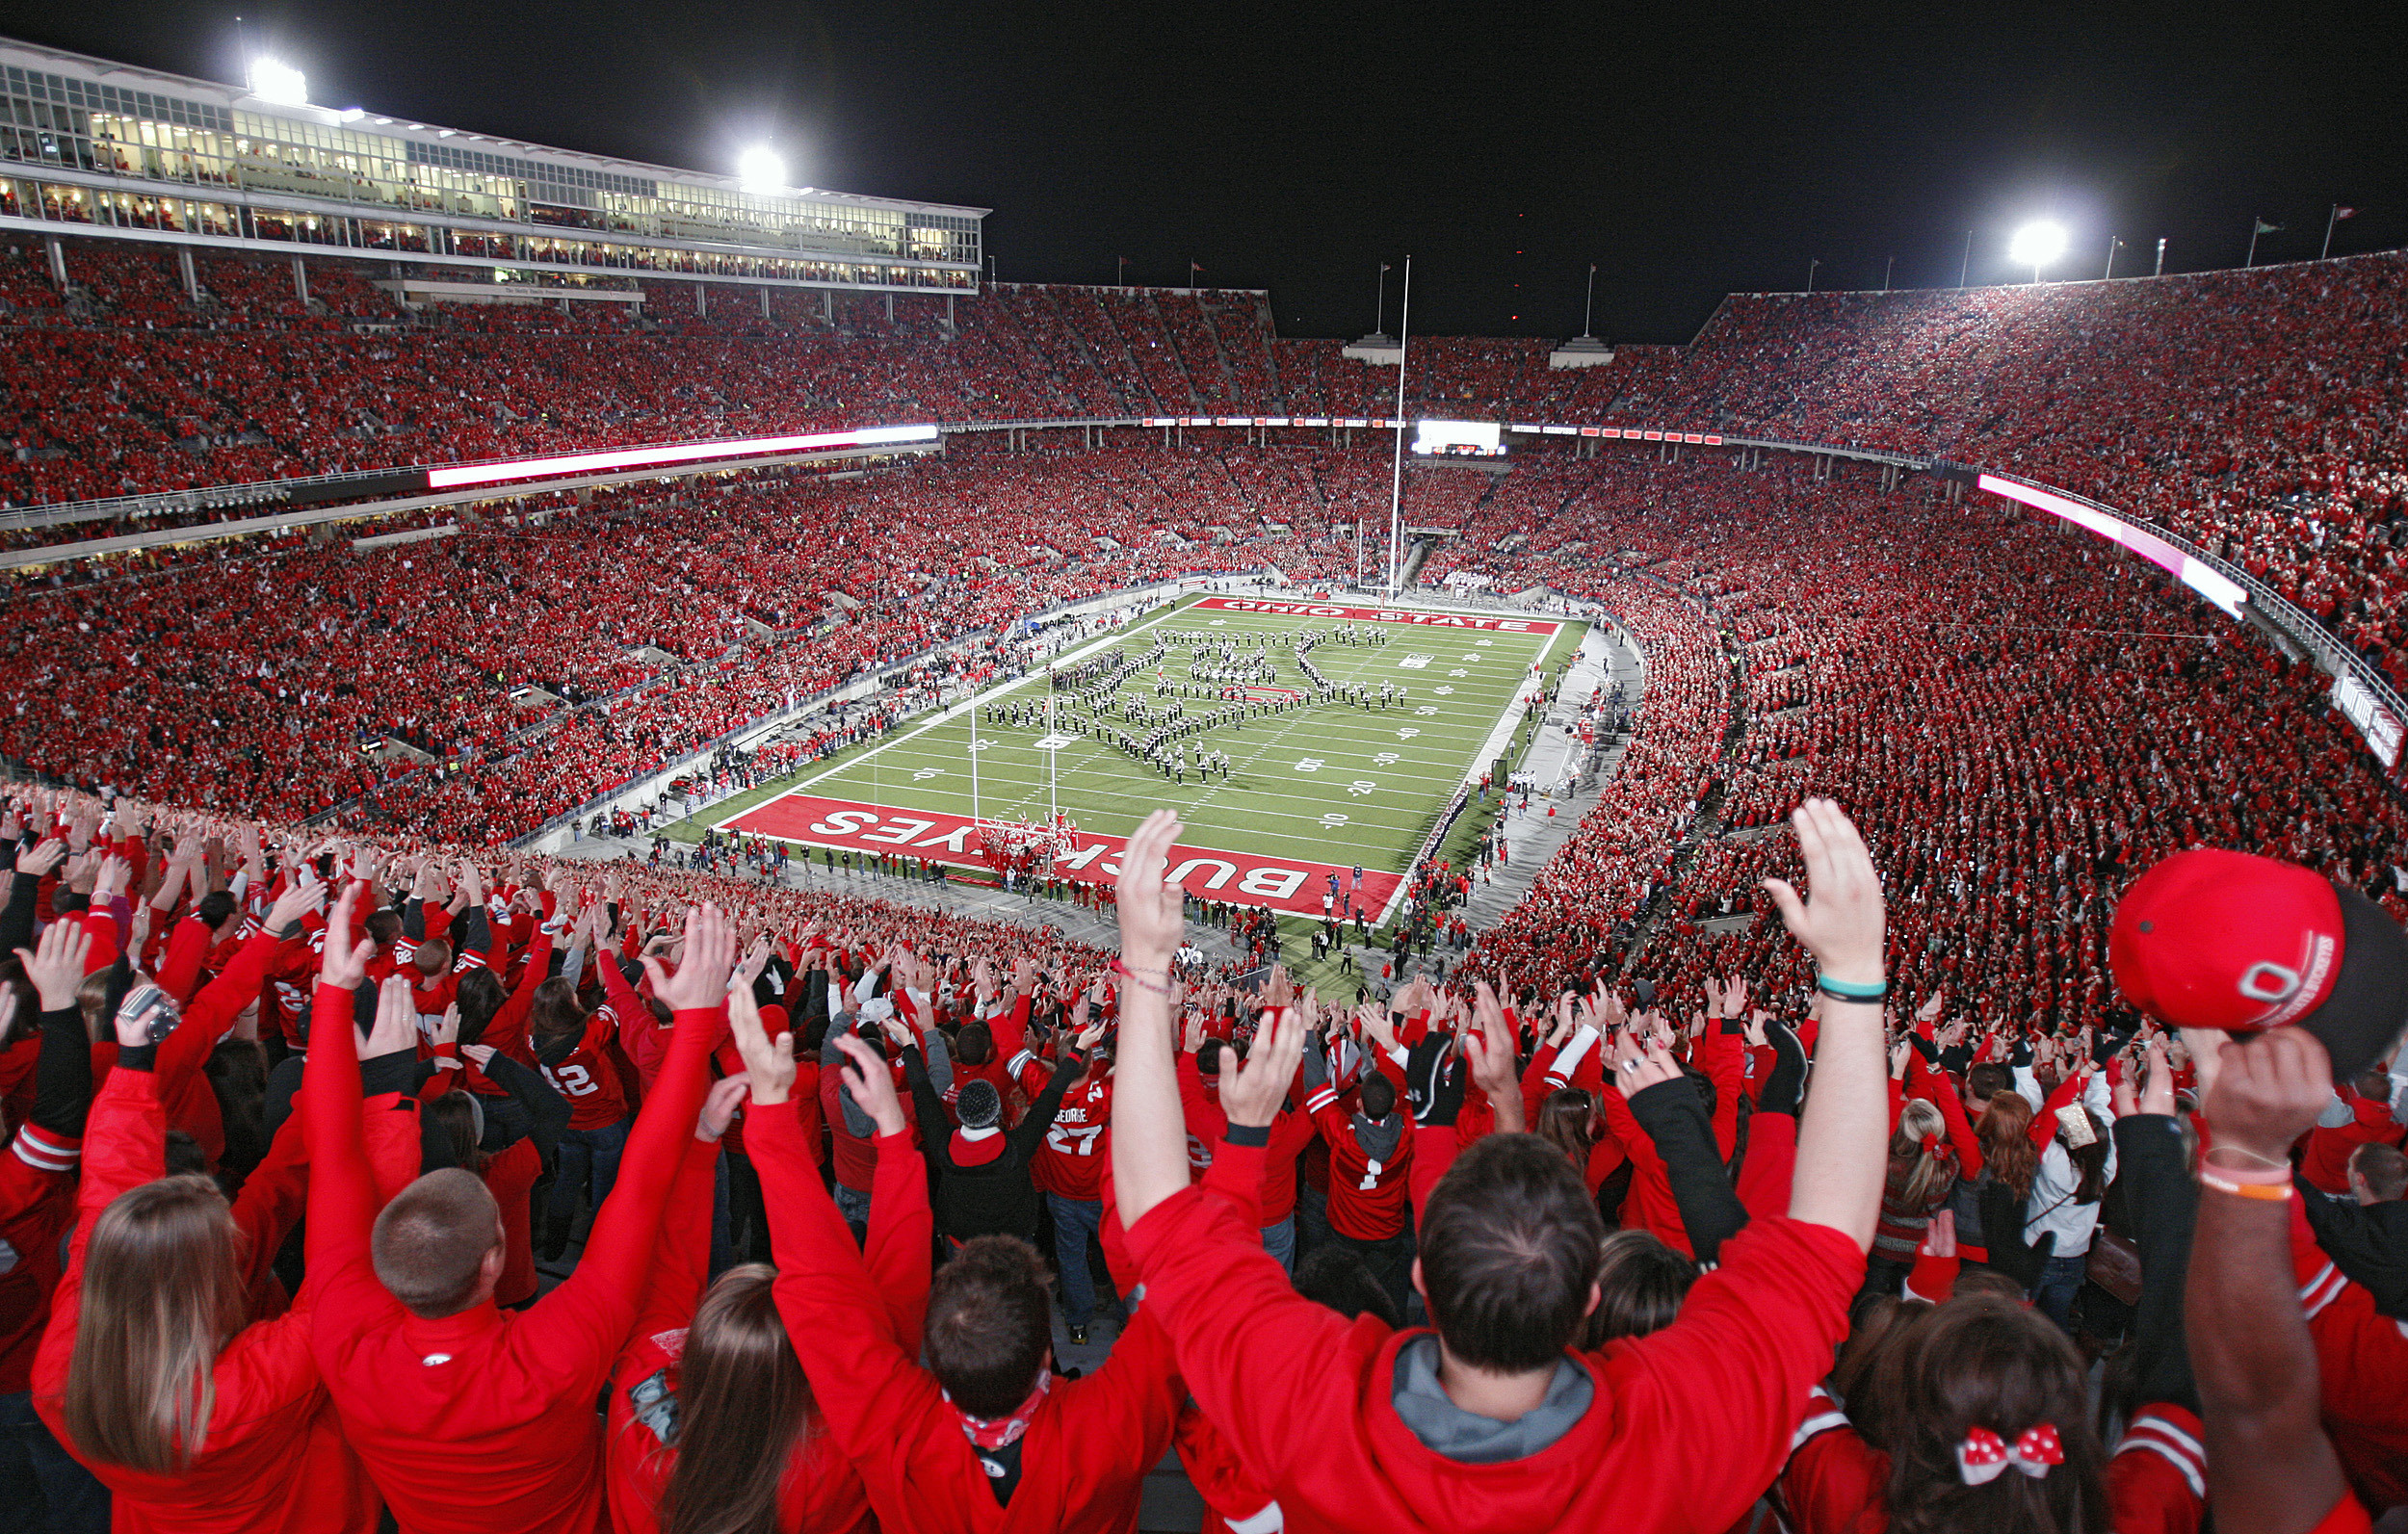 1920x1200 Download Stadium Scarlet Ohio State Football Hd Wallpapers 75 Images Ohiostatebuckeyes